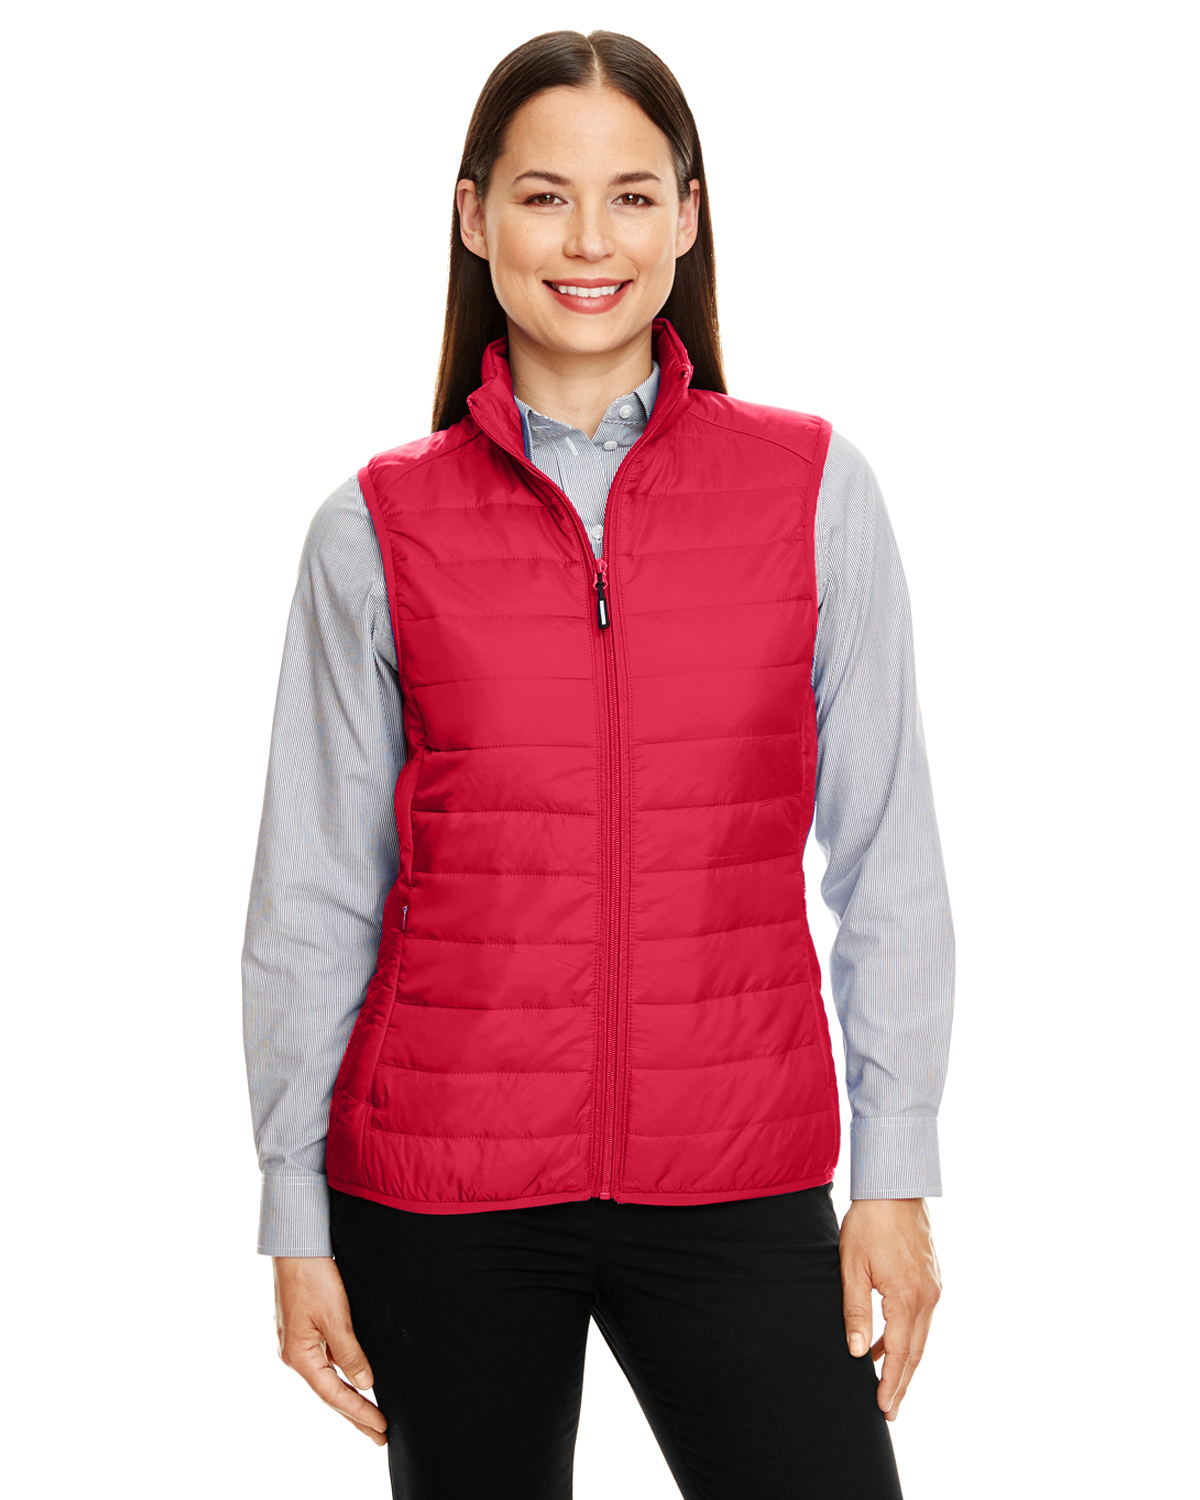 Ash City CE702W - Core 365 Women's Prevail Packable ...